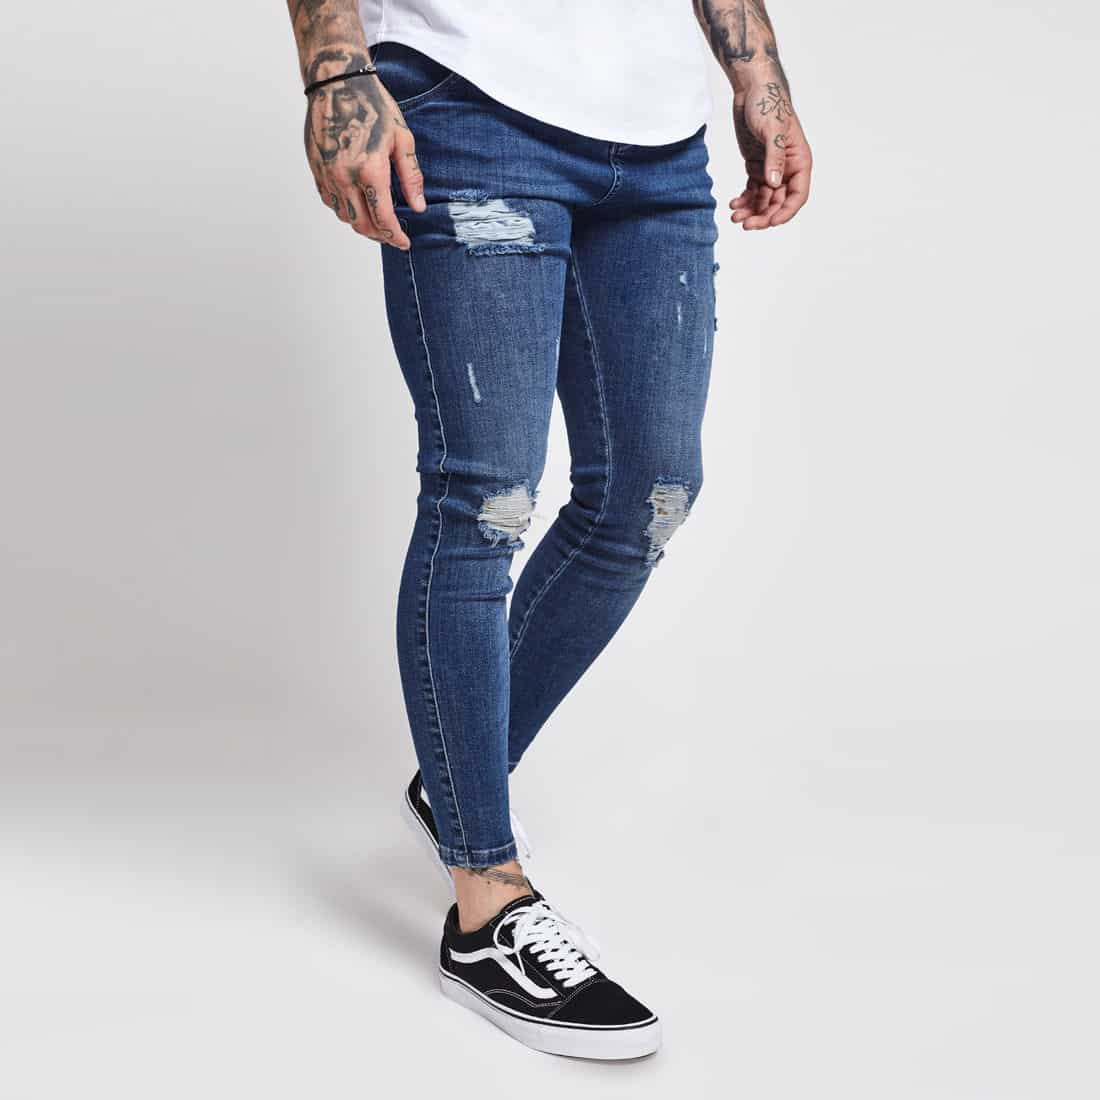 d1e65af813 Sik Silk Skinny Distressed Jeans in Midstone Blue